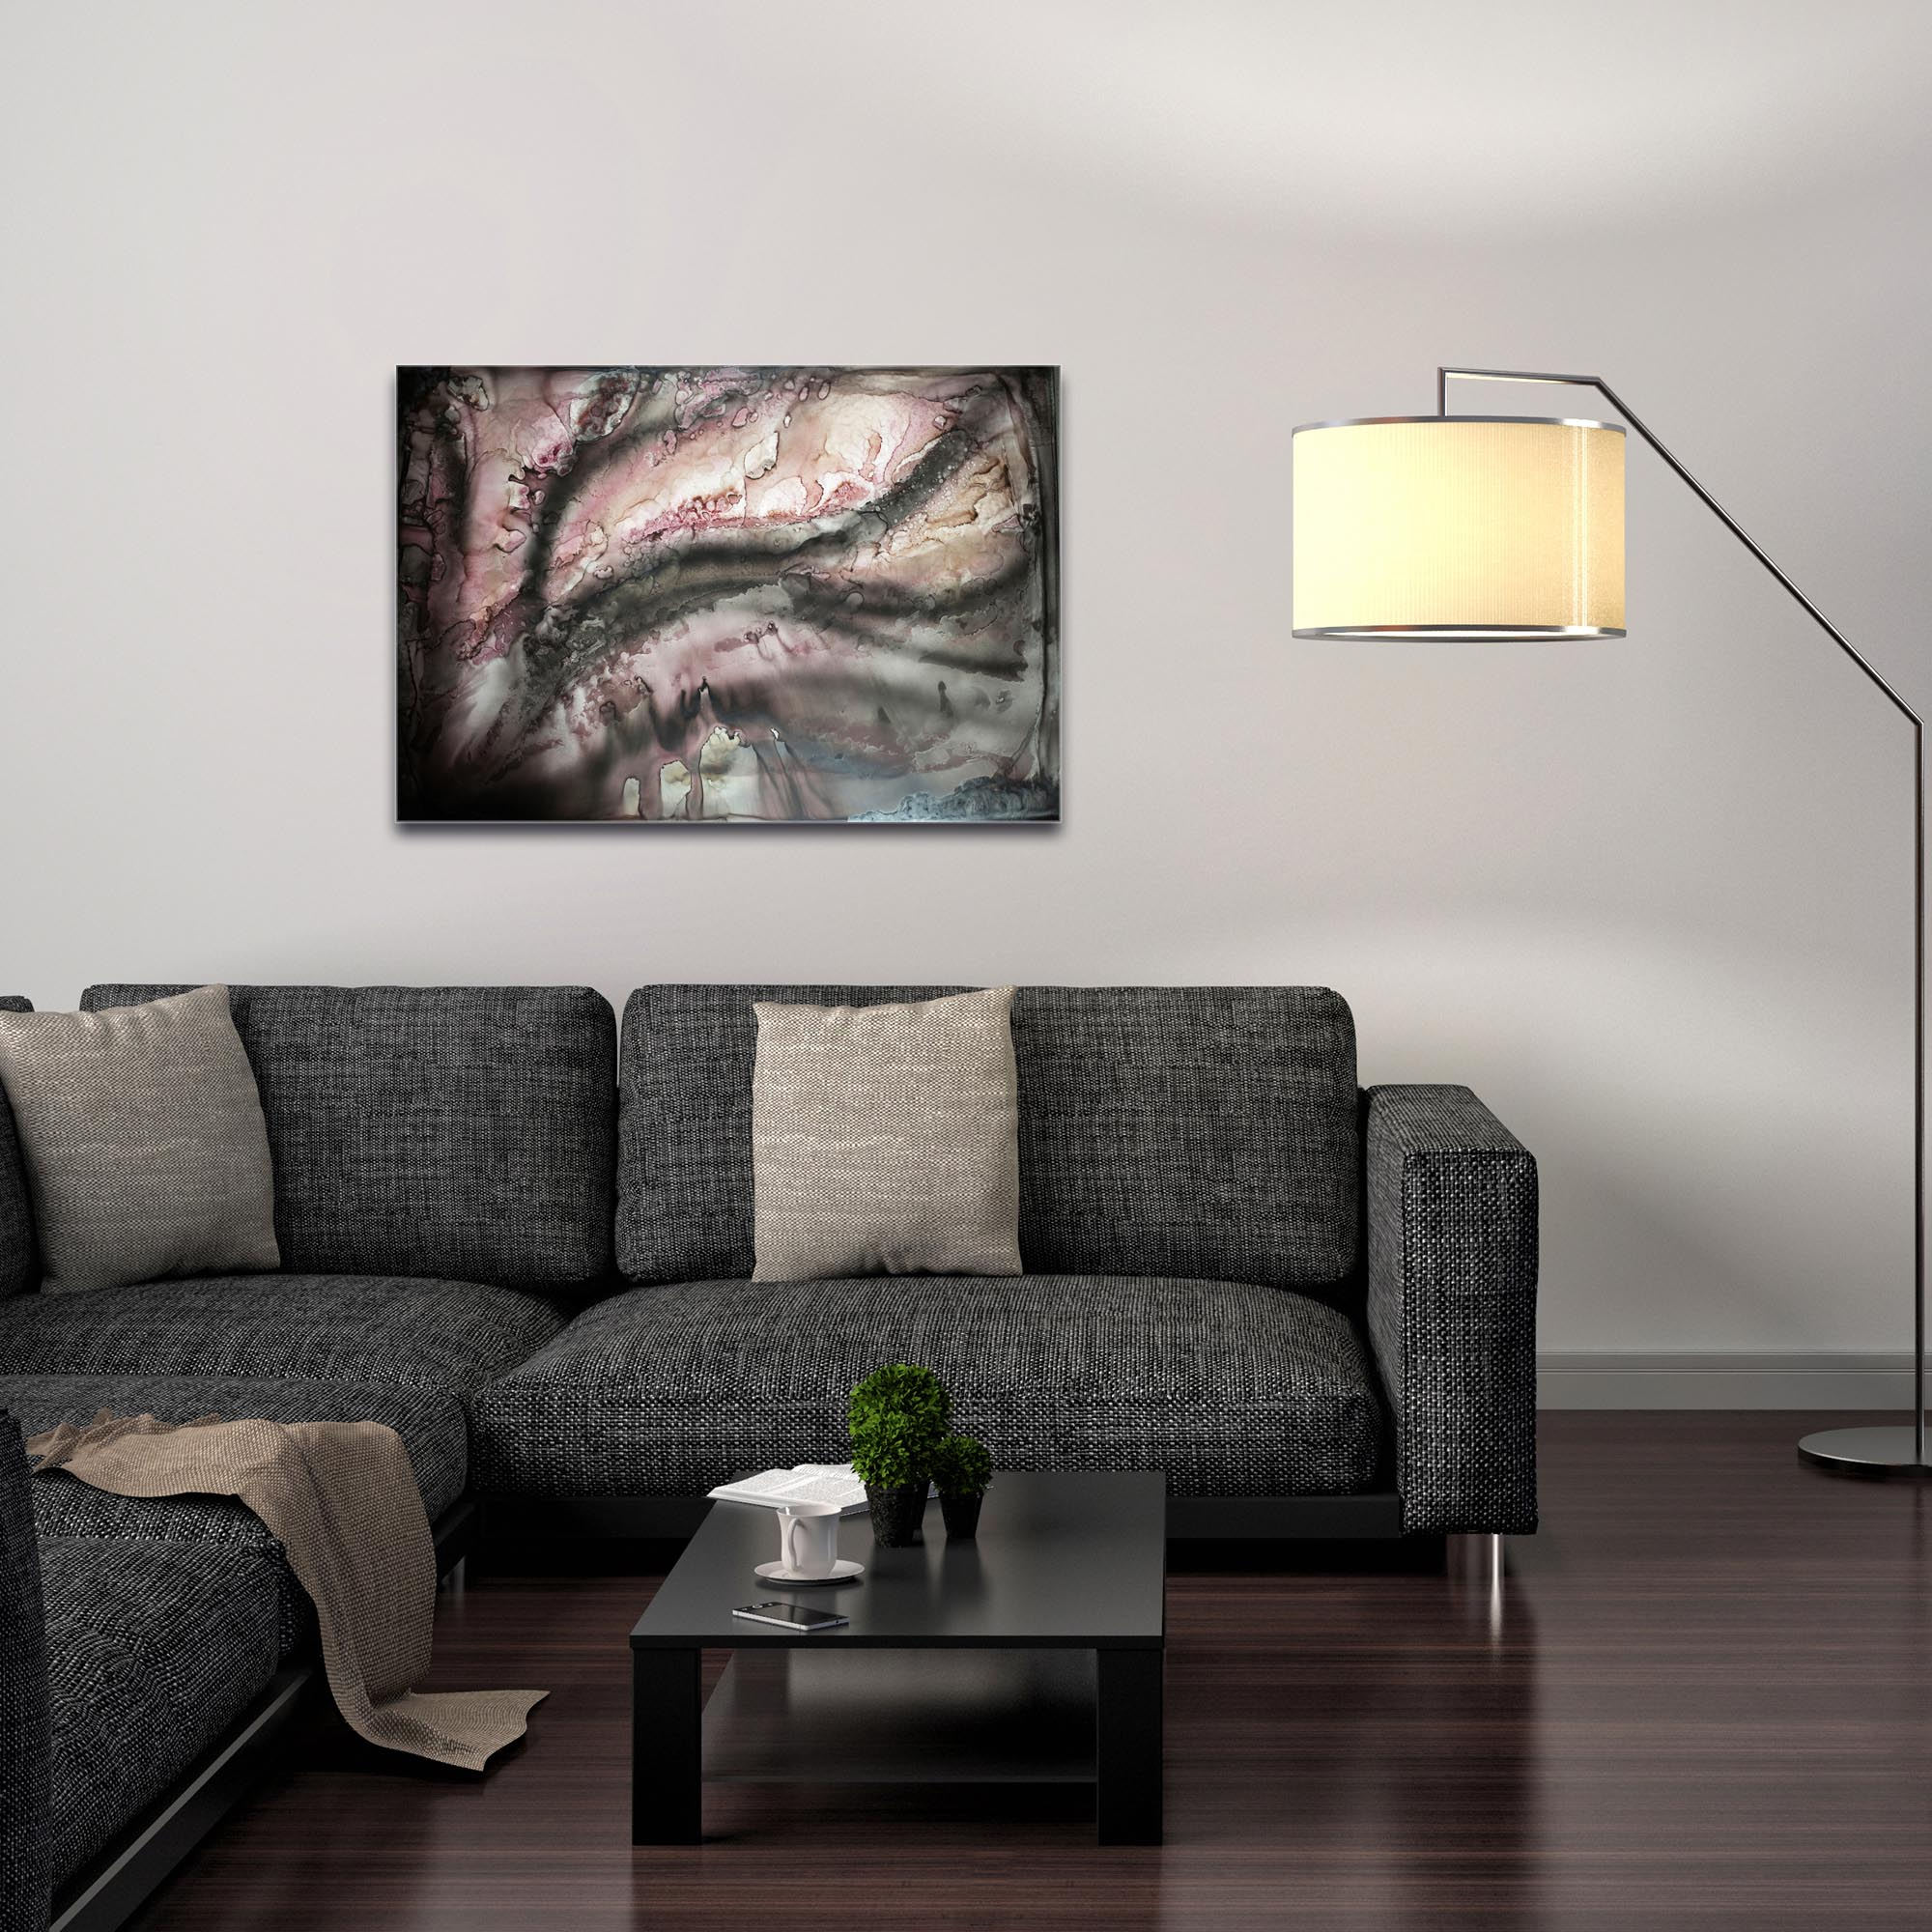 Abstract Wall Art 'Rose Crystal' - Urban Decor on Metal or Plexiglass - Image 3